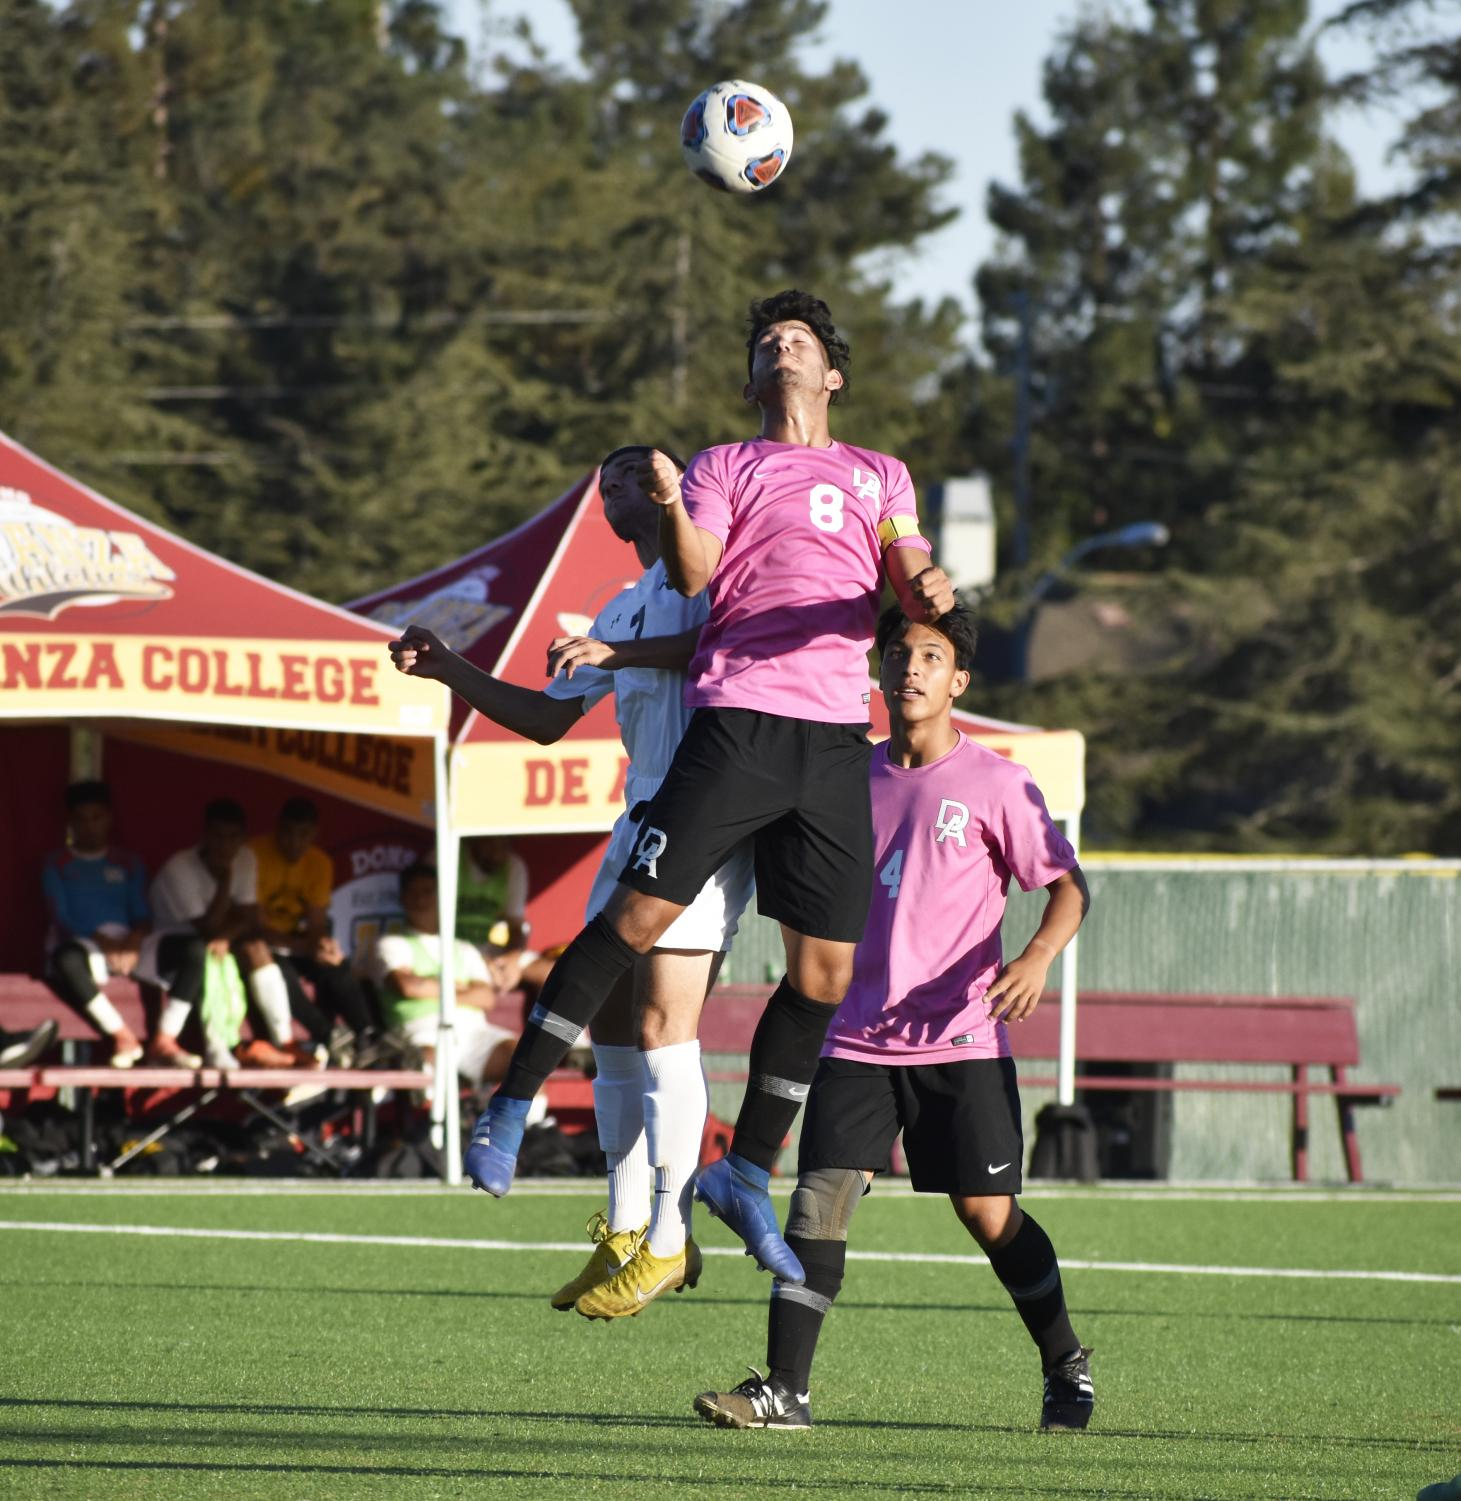 Captain Brian Alvarez, fights for the head during the game on Nov. 10.